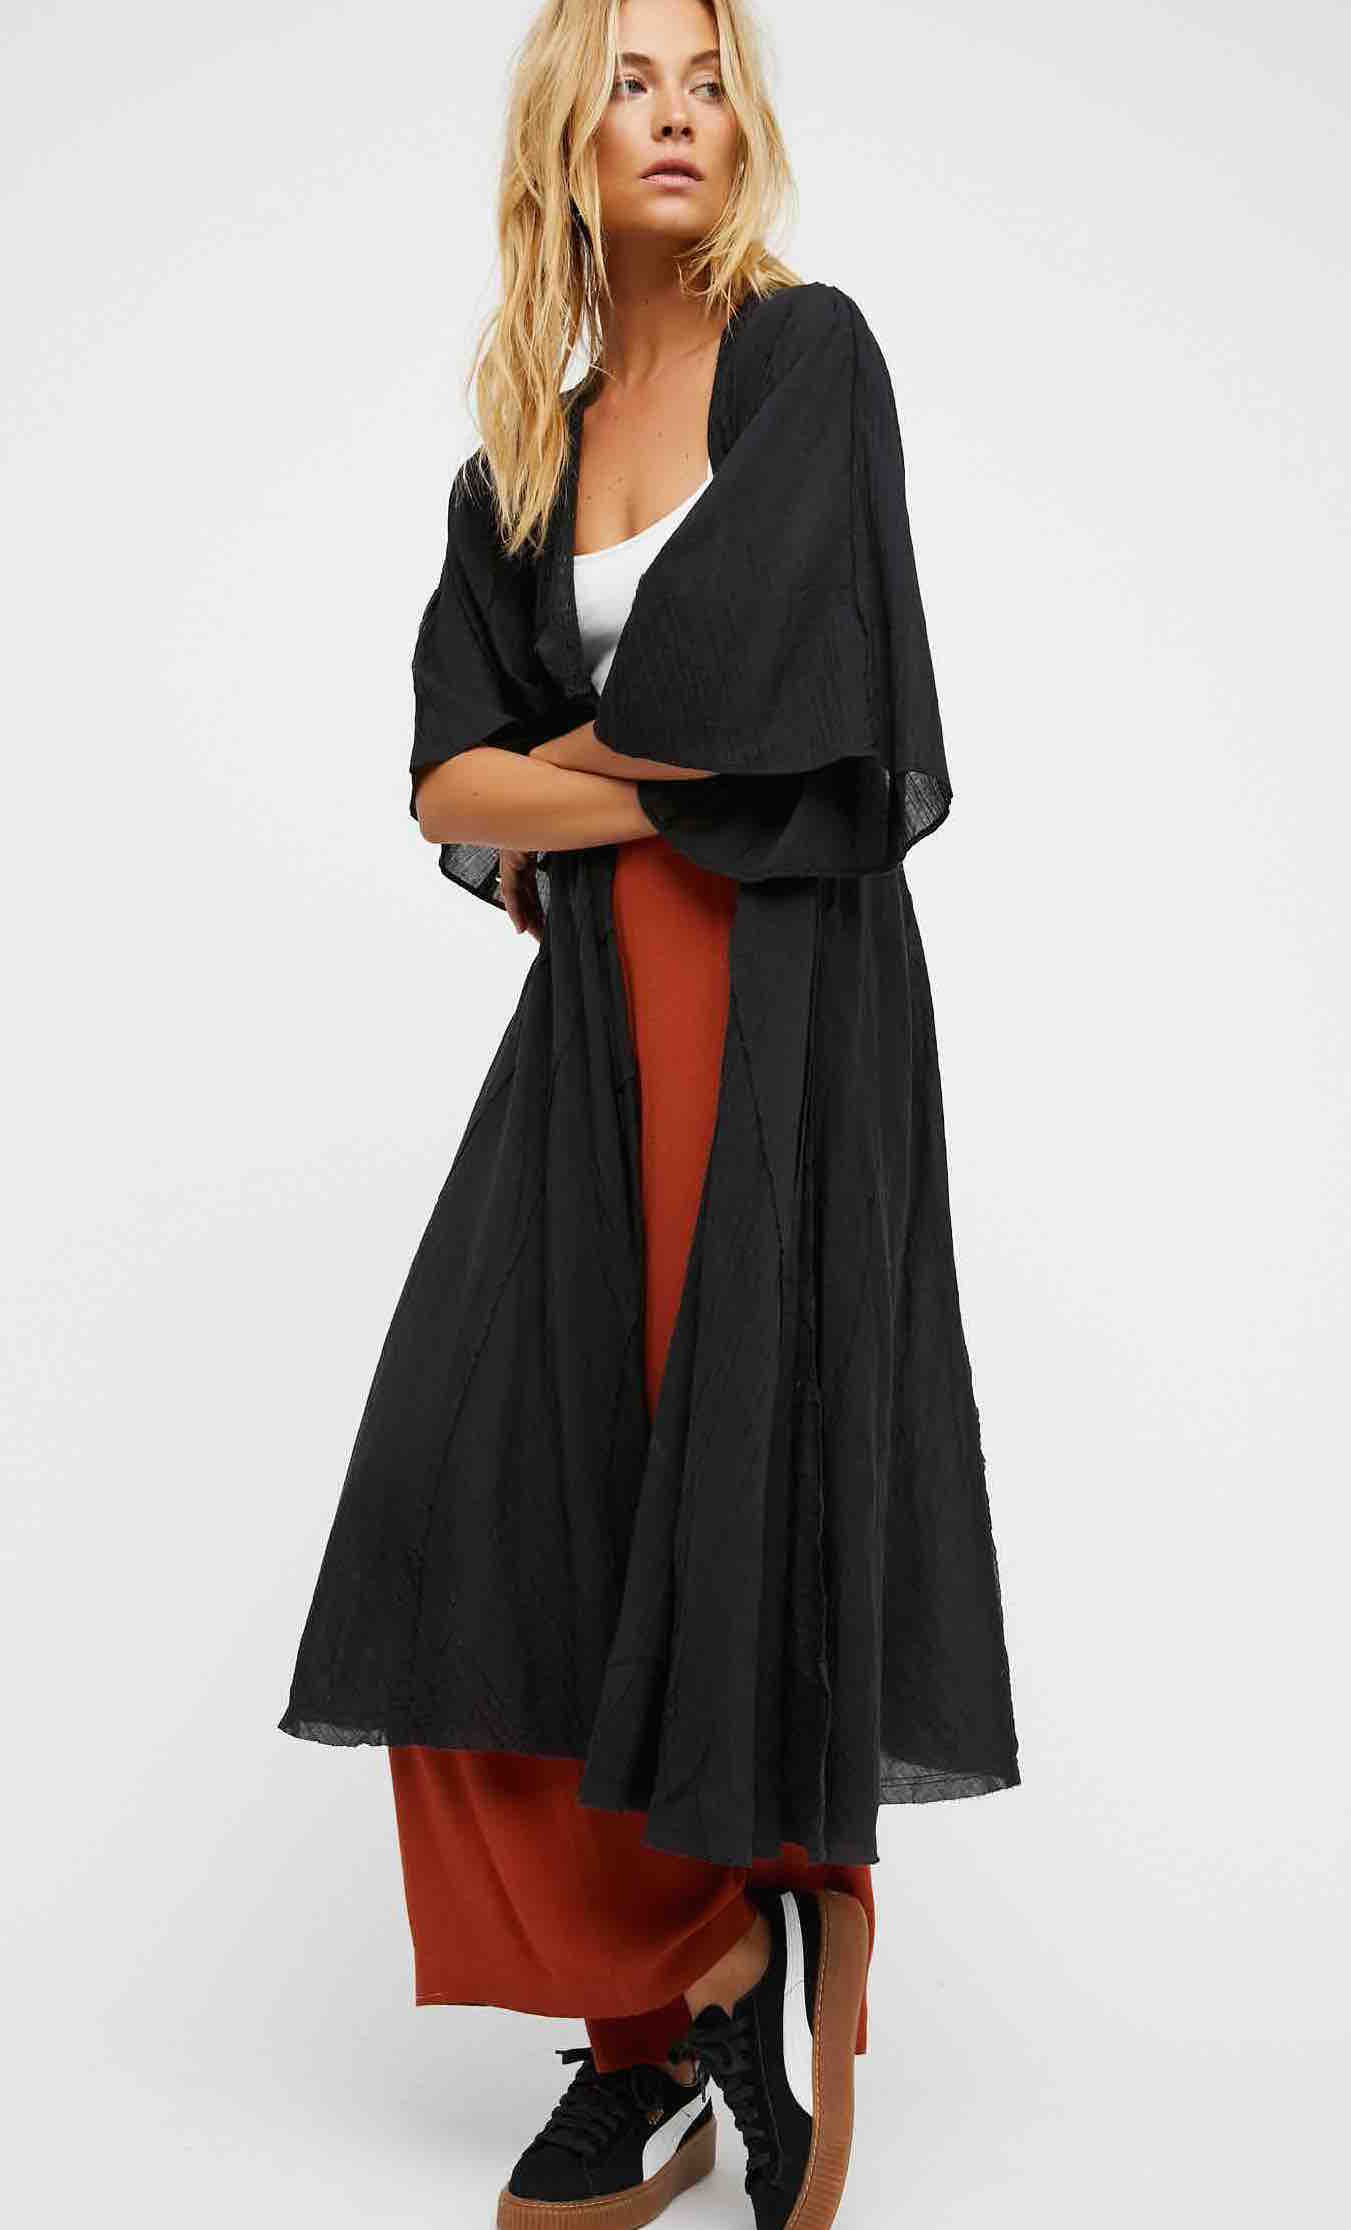 Free People Black Duster